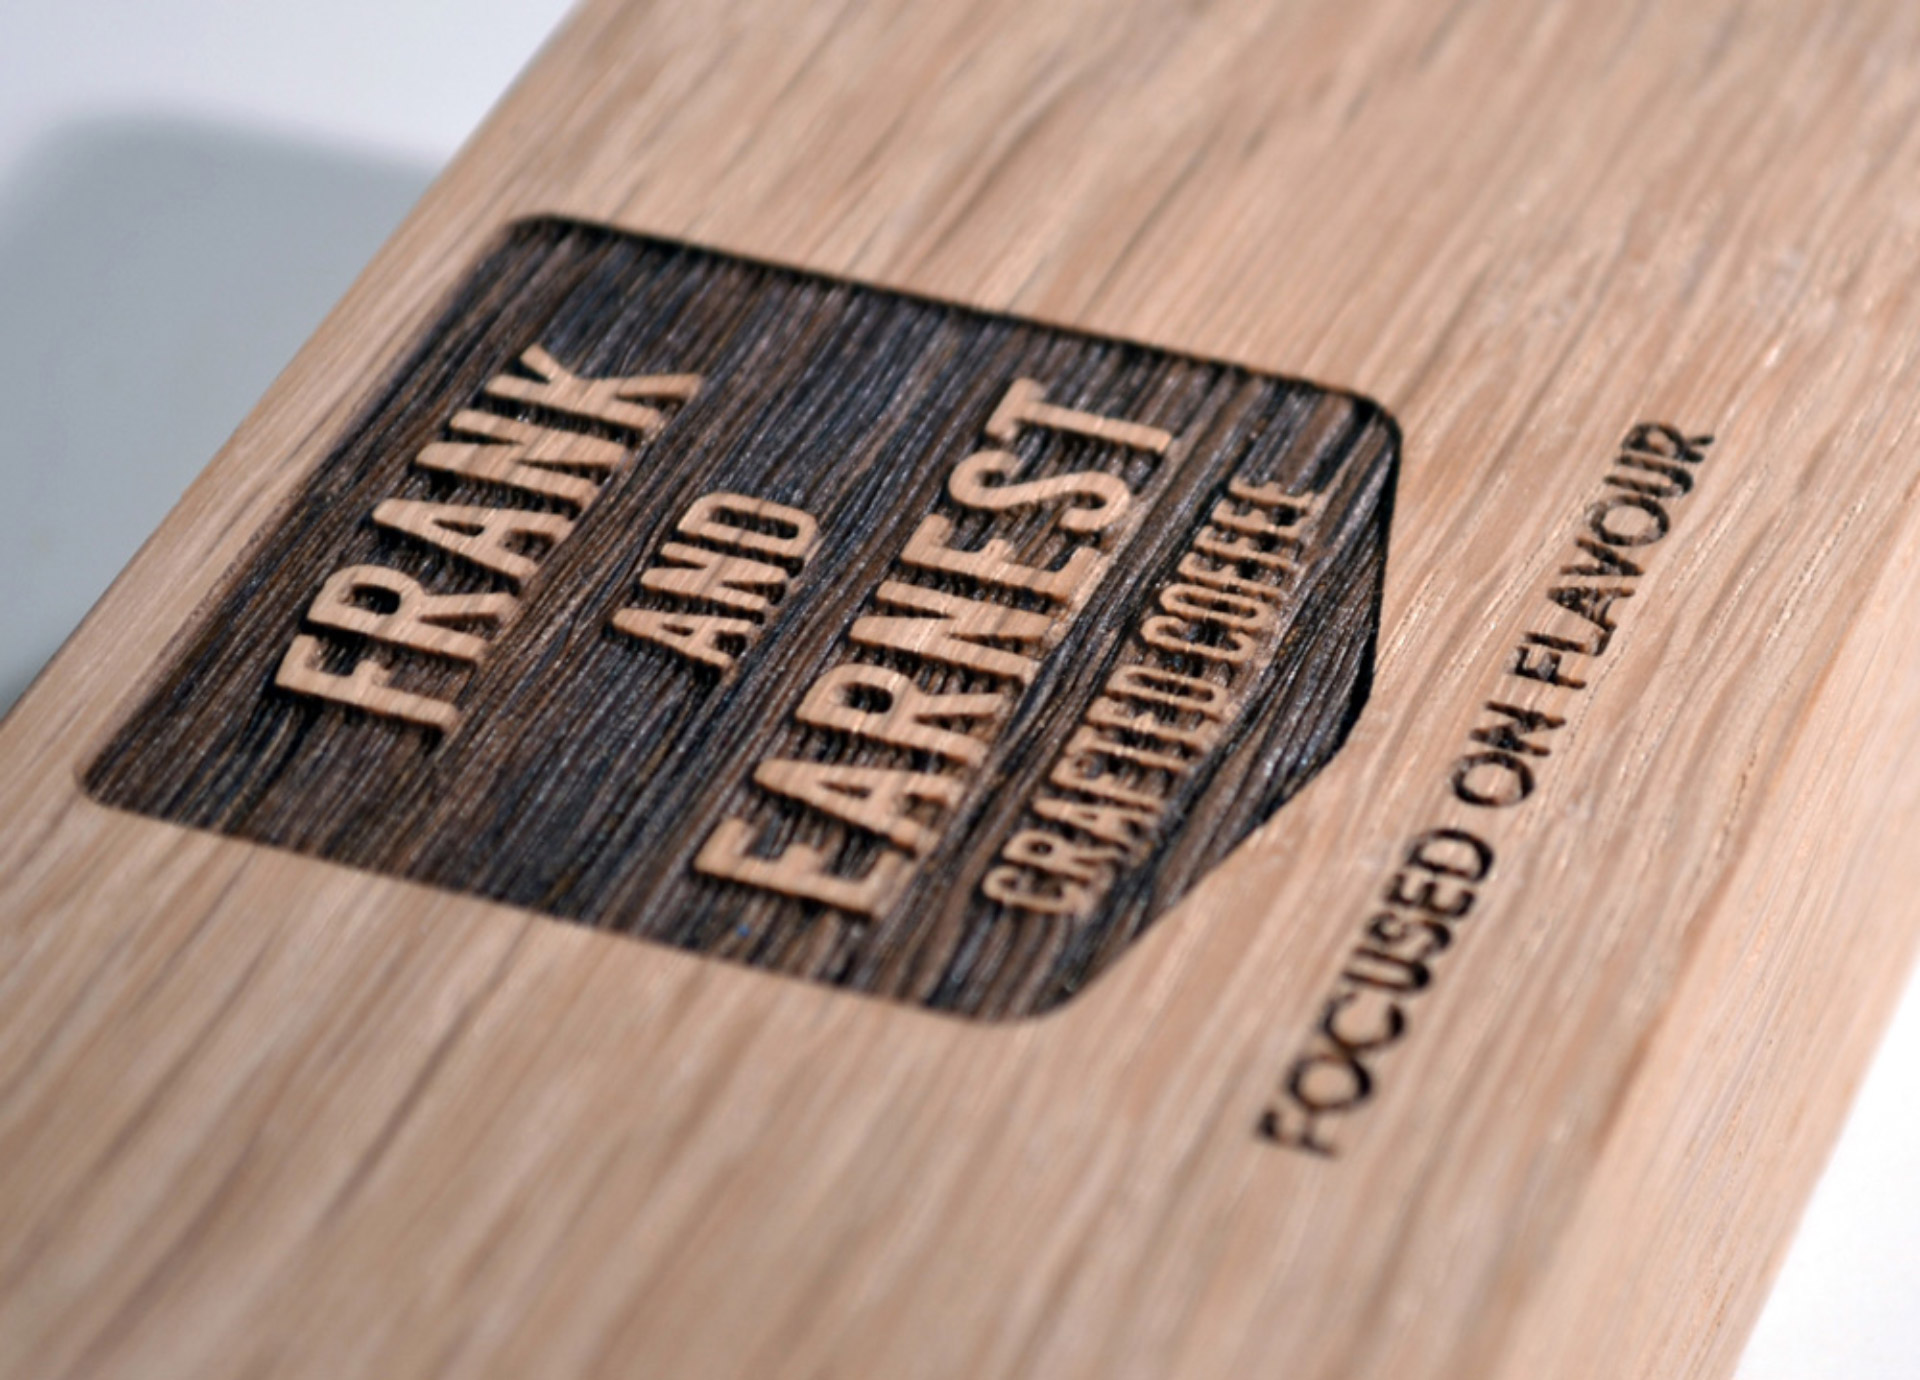 Frank & Earnest brand on wood